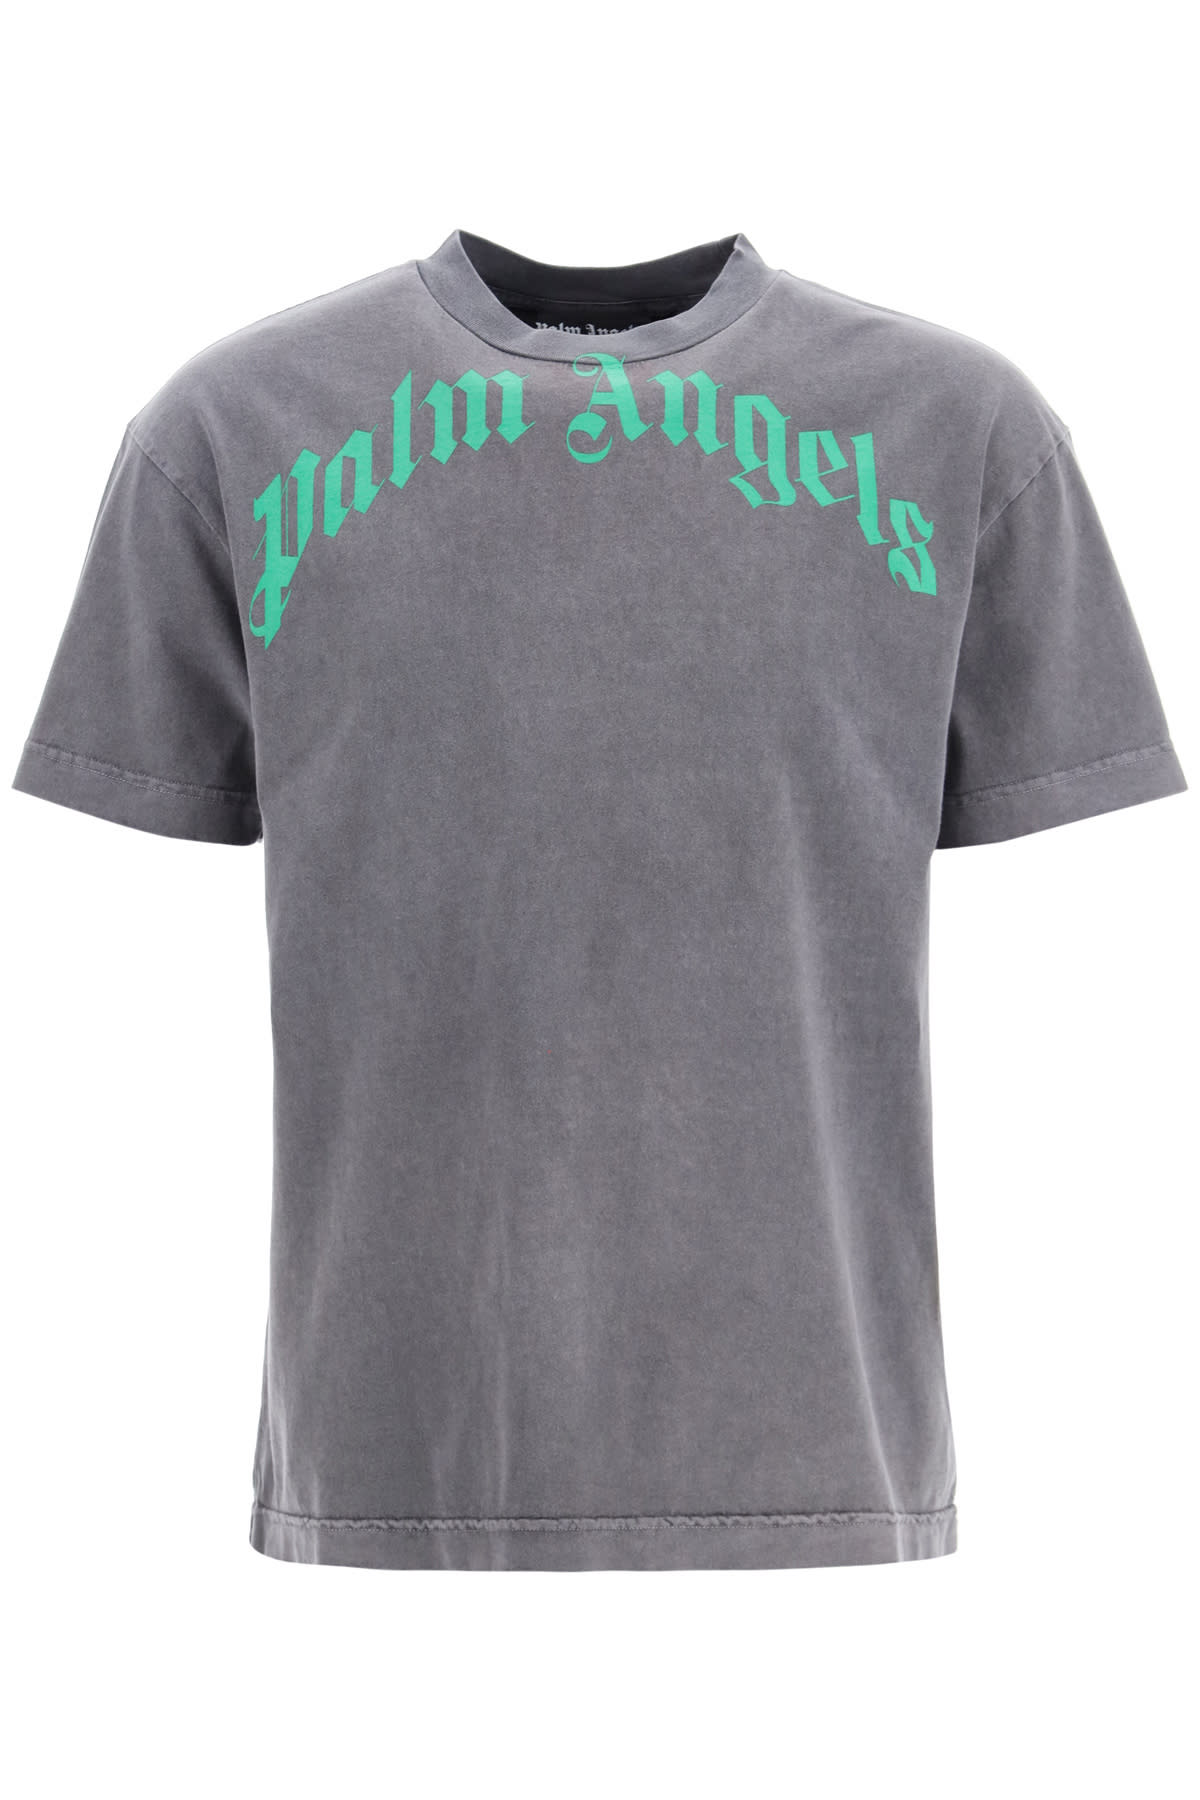 Palm Angels VINTAGE T-SHIRT WITH LOGO